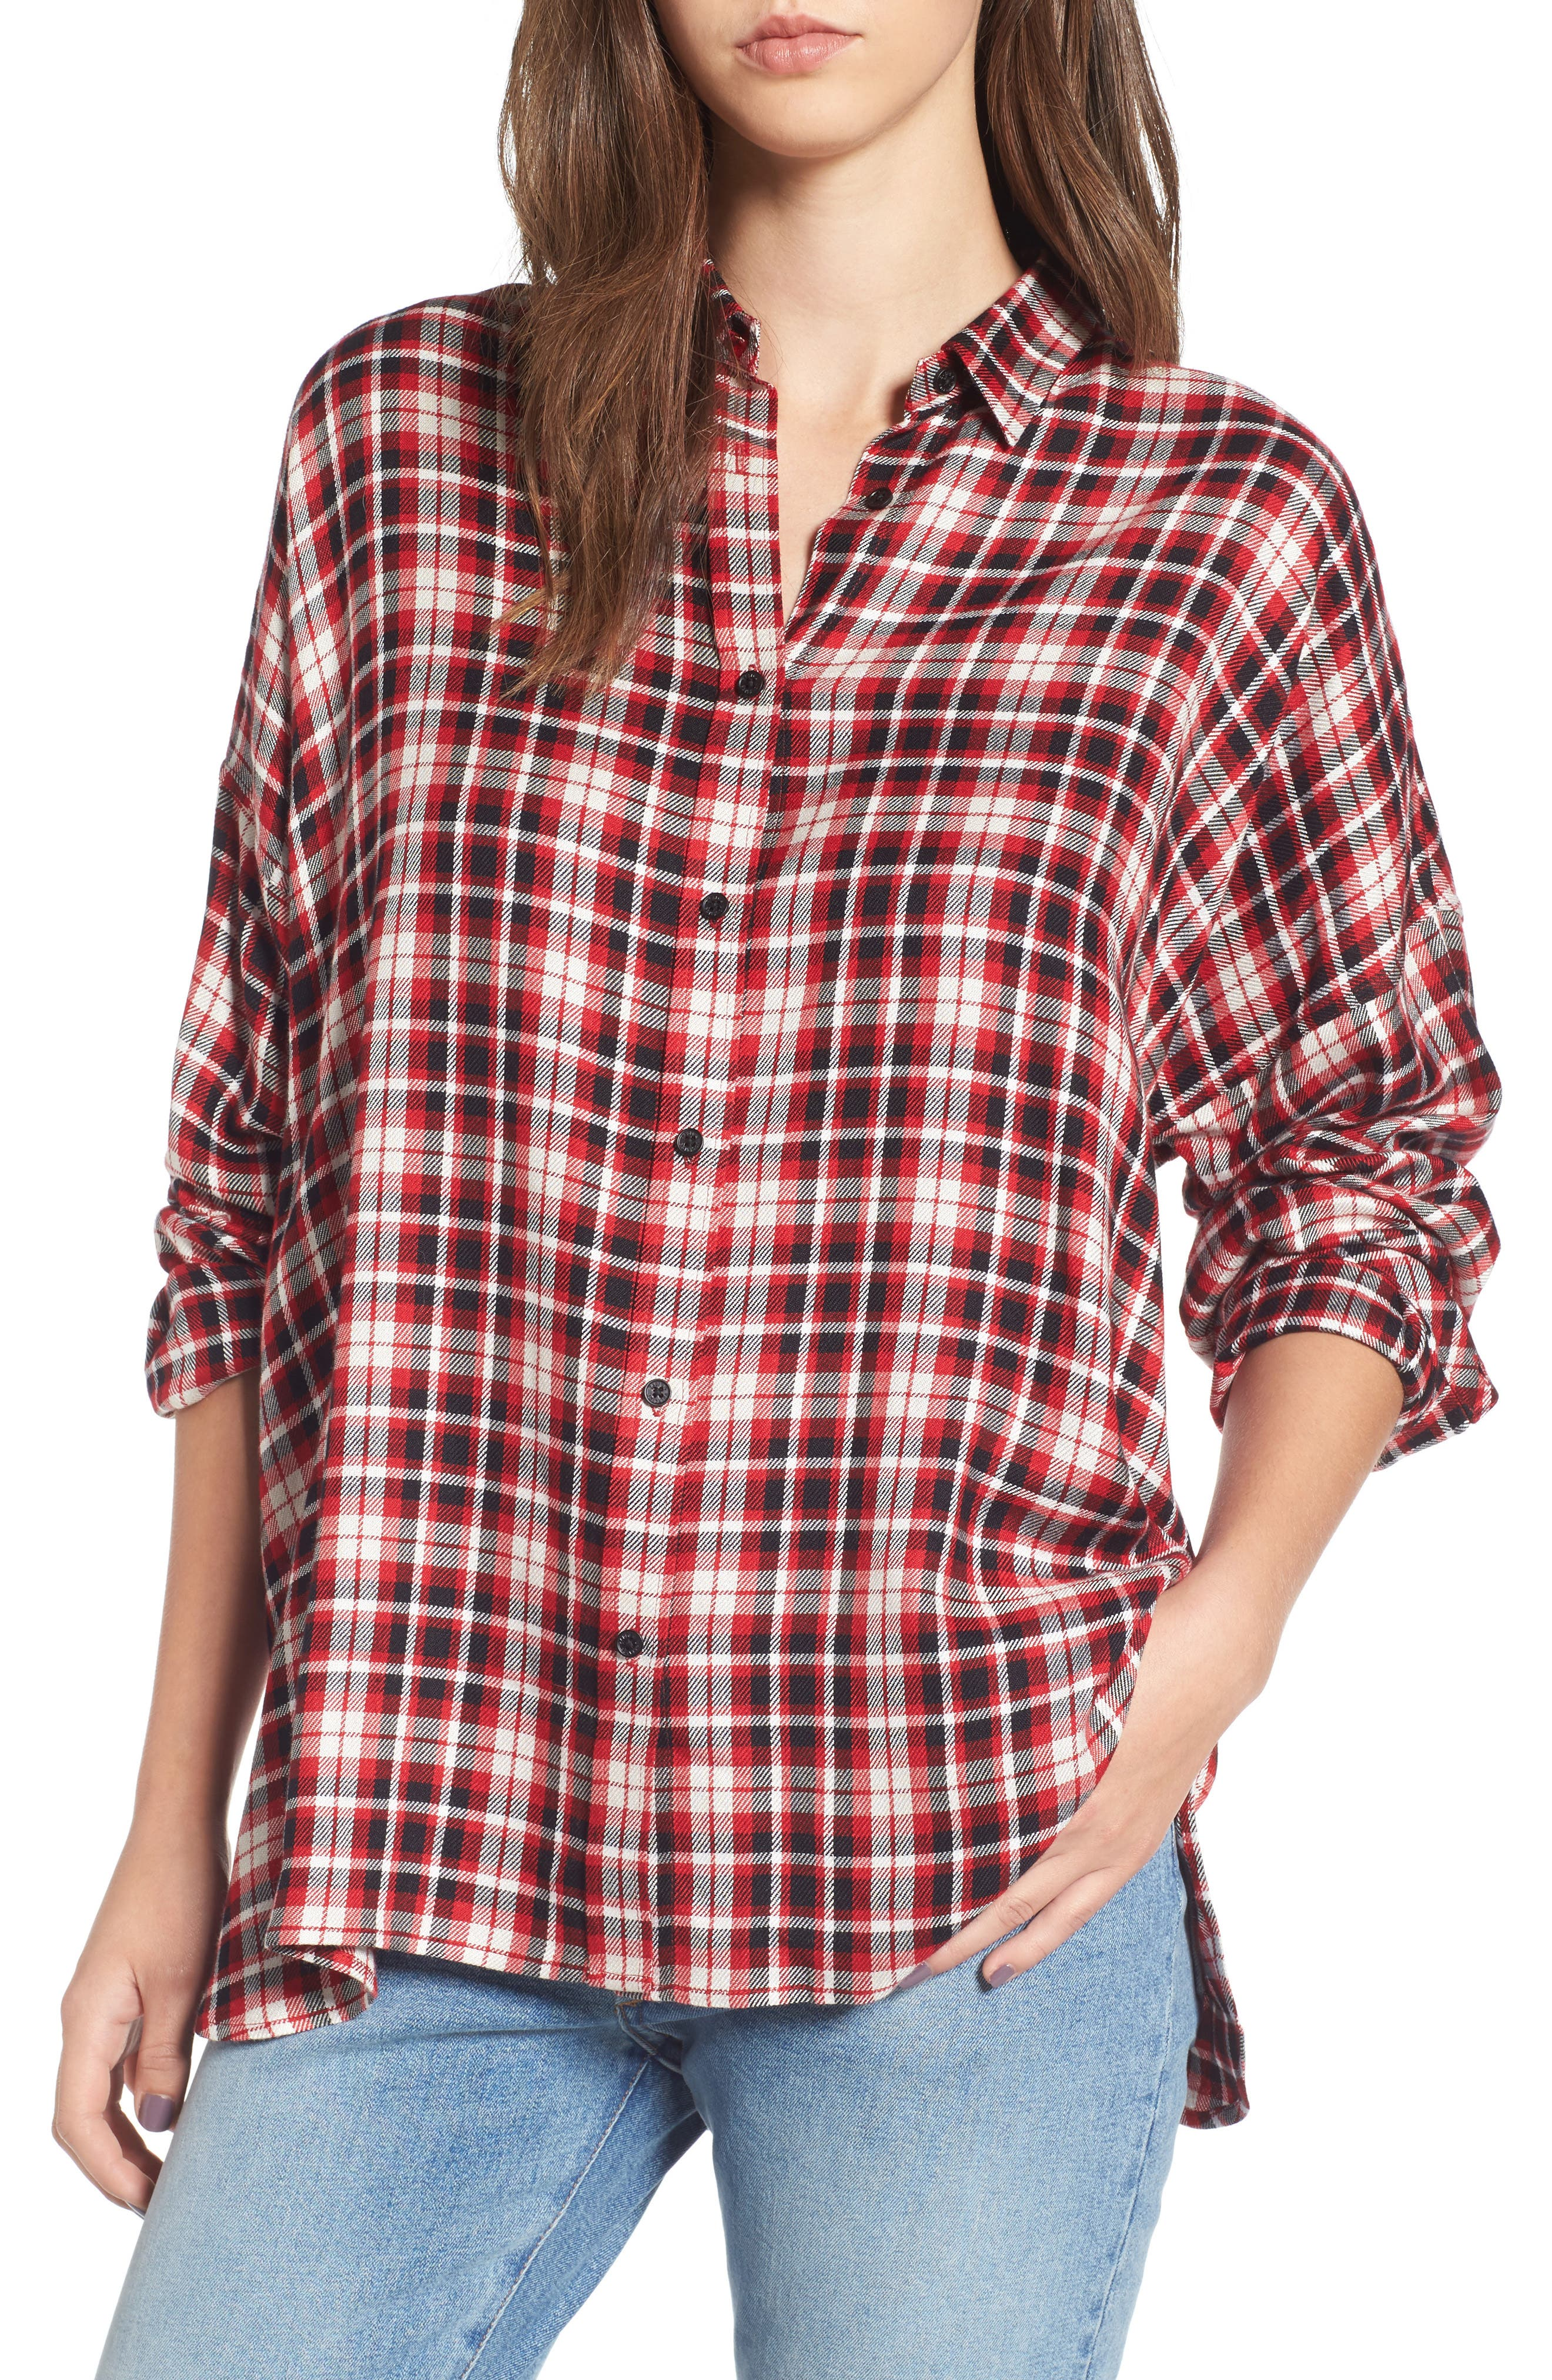 Tamara Car Plaid Shirt,                         Main,                         color,